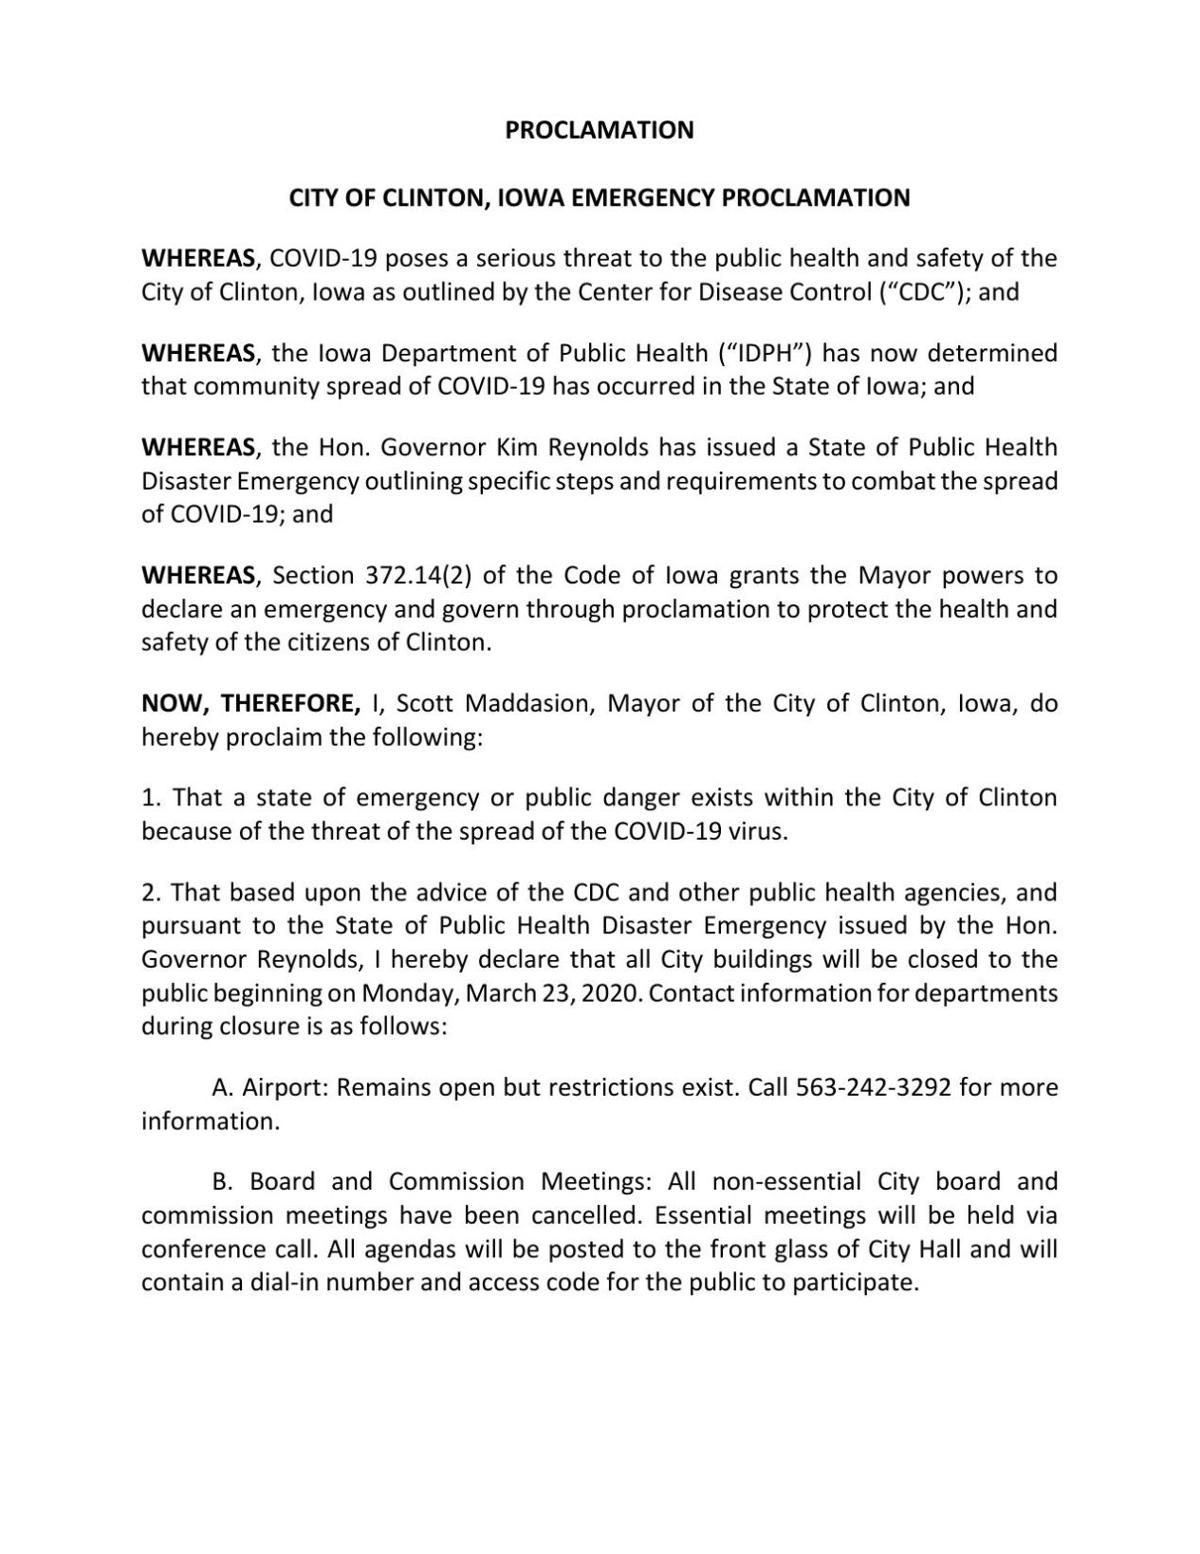 Clinton mayor's emergency proclamation